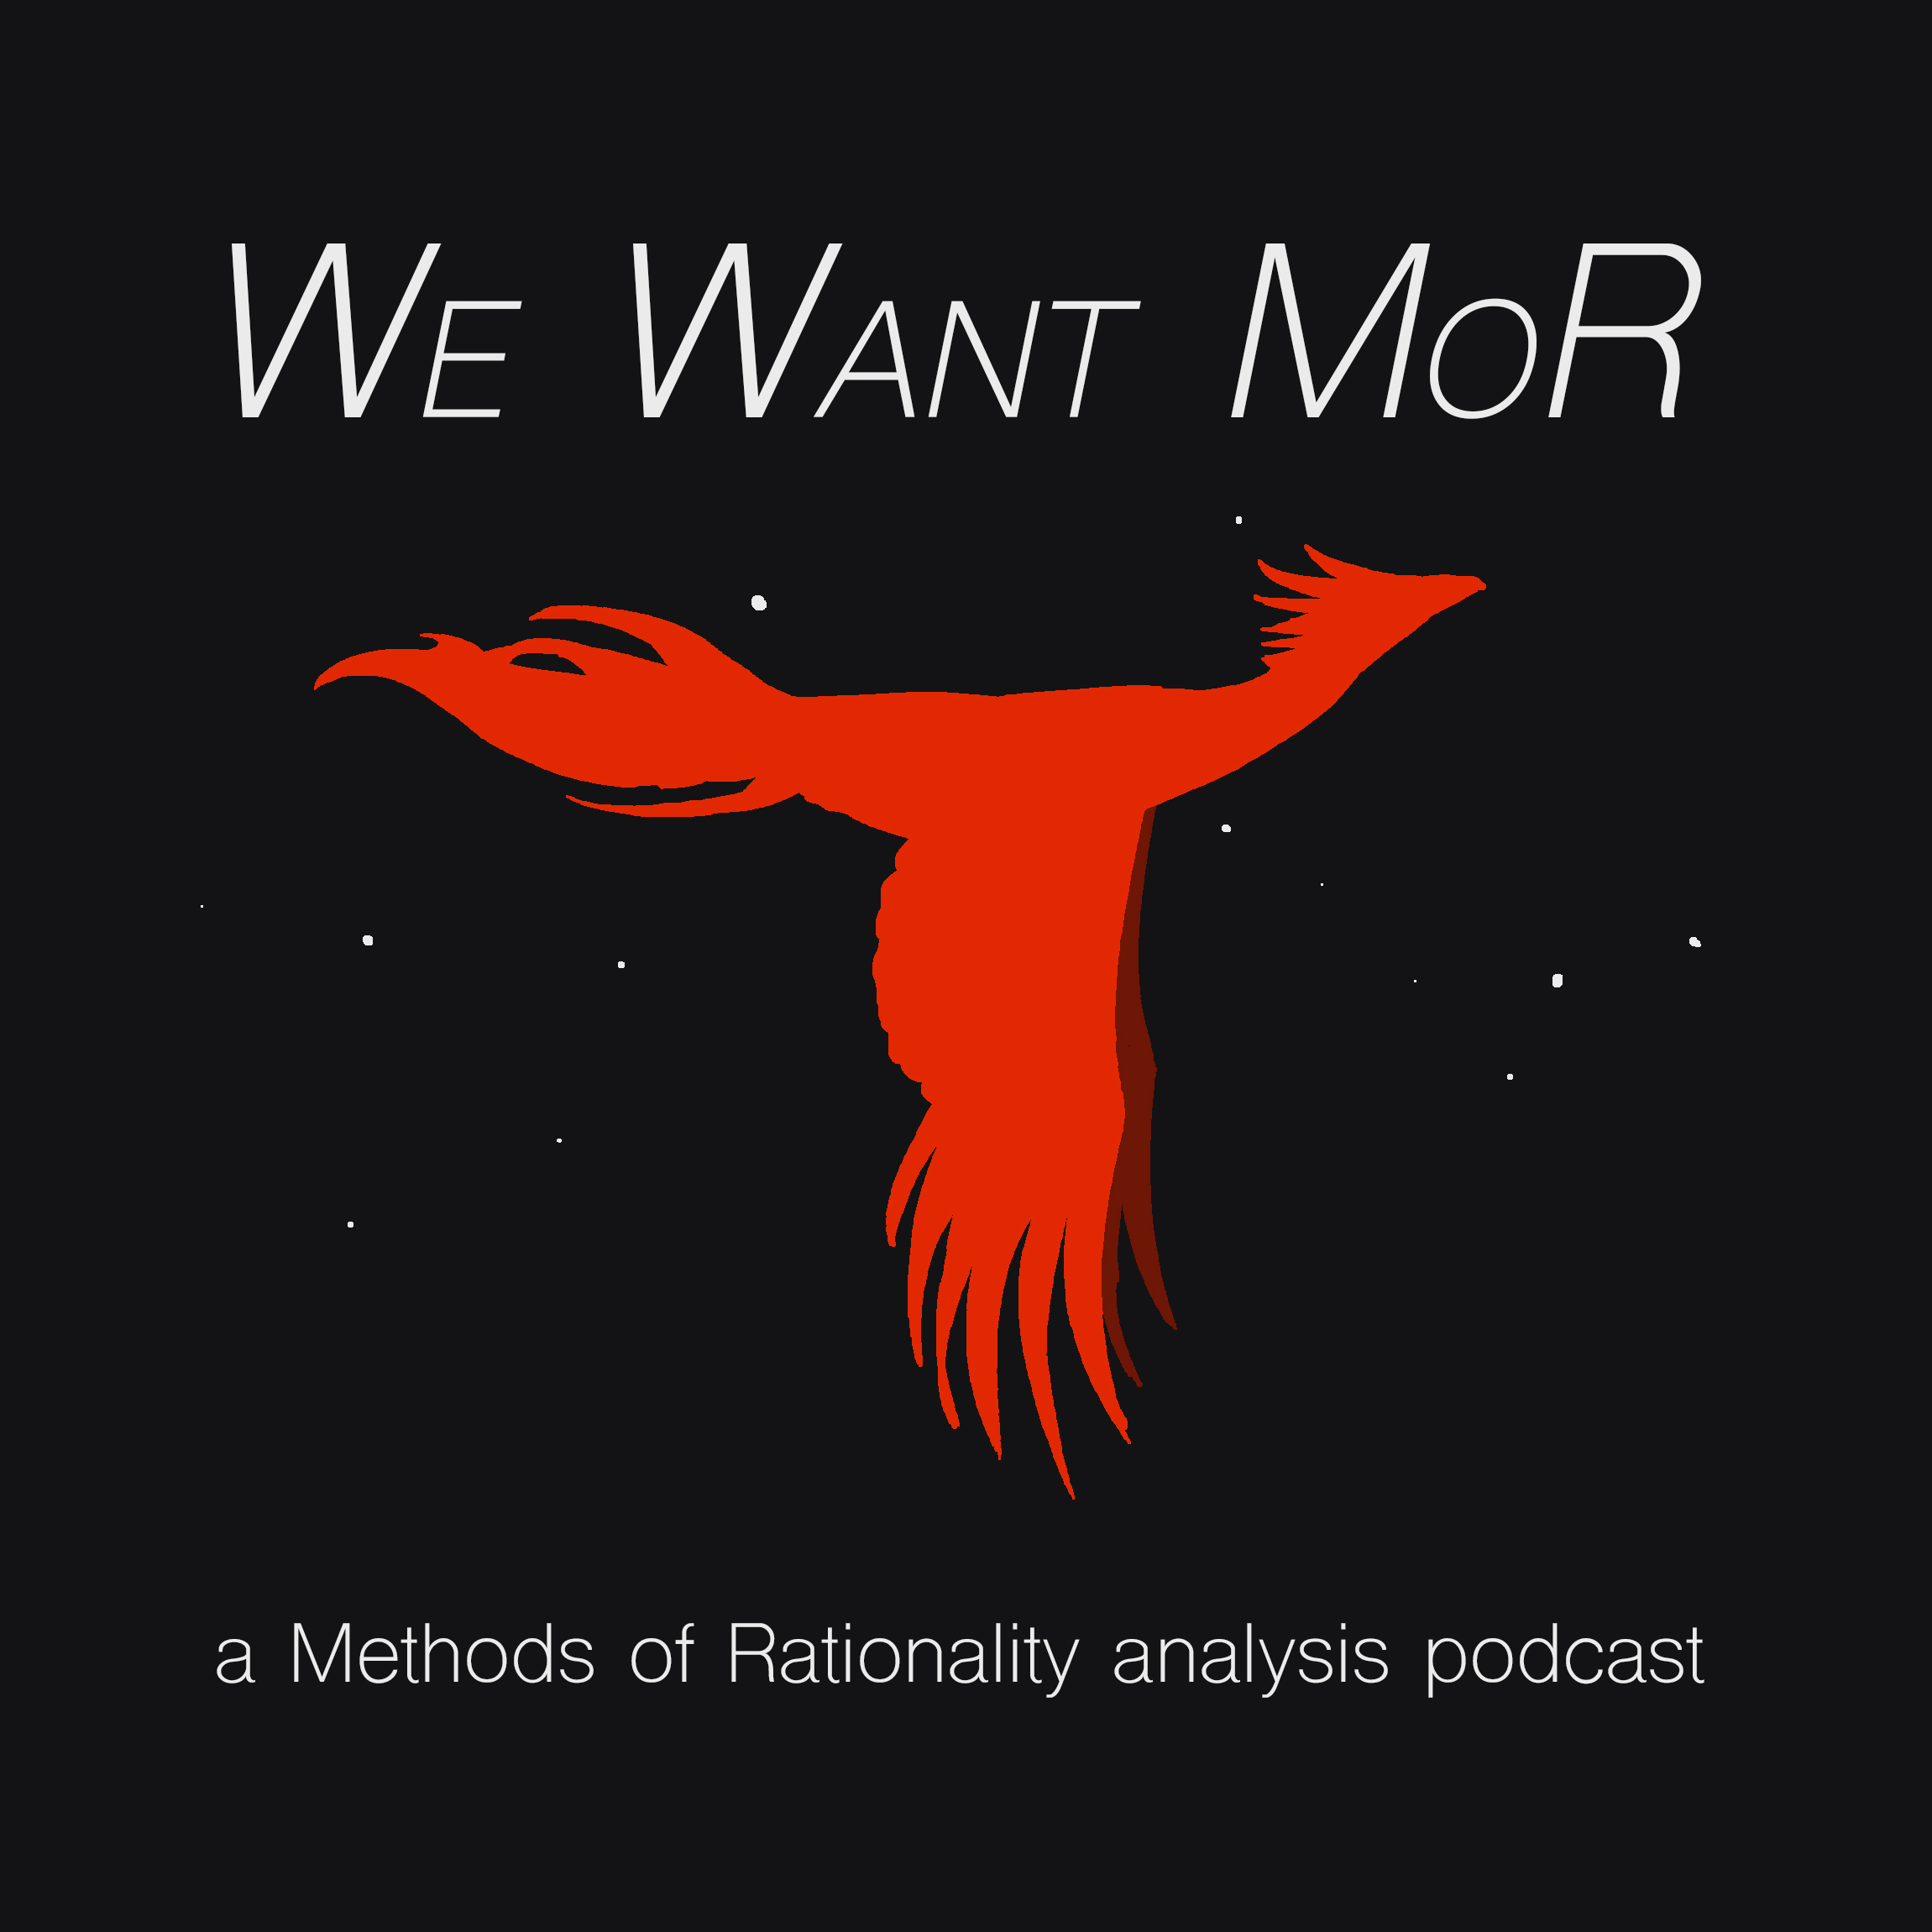 Analysis Podcasts